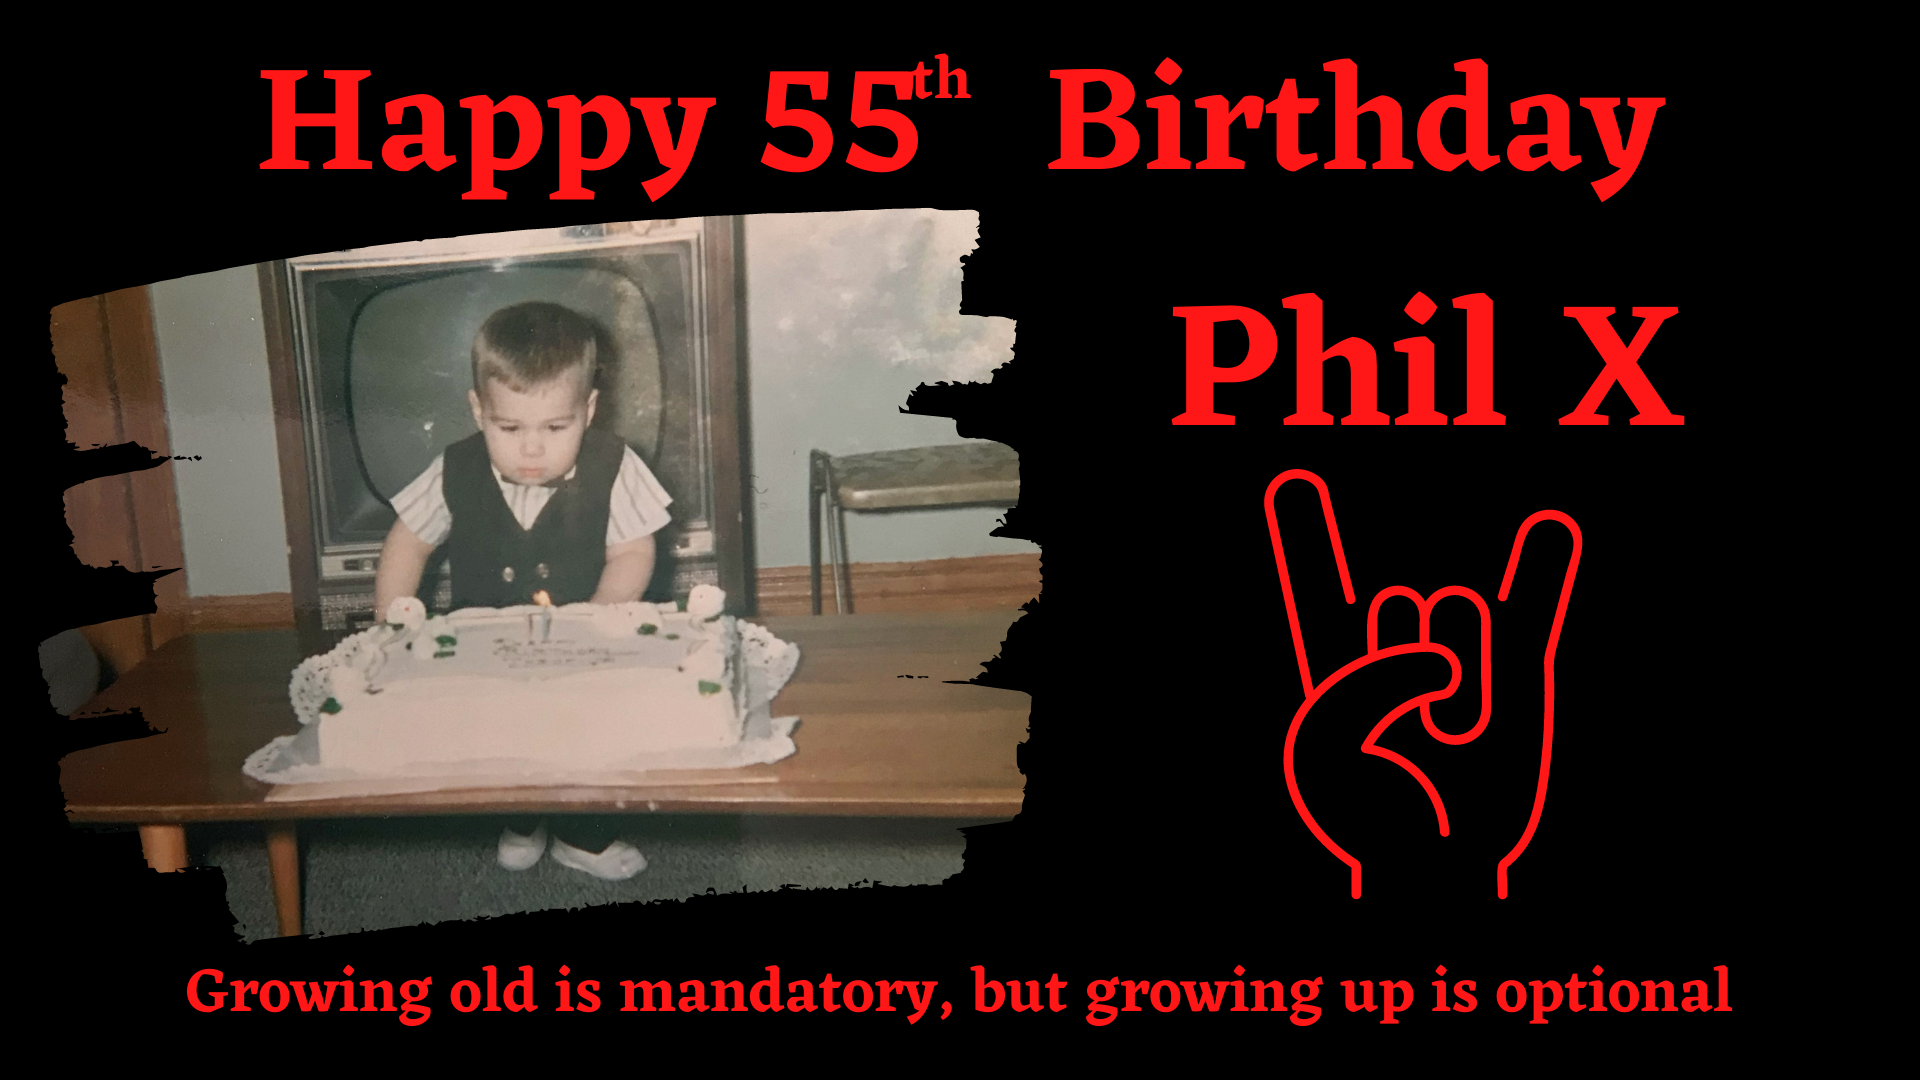 picture of a young Phil X blowing candels.